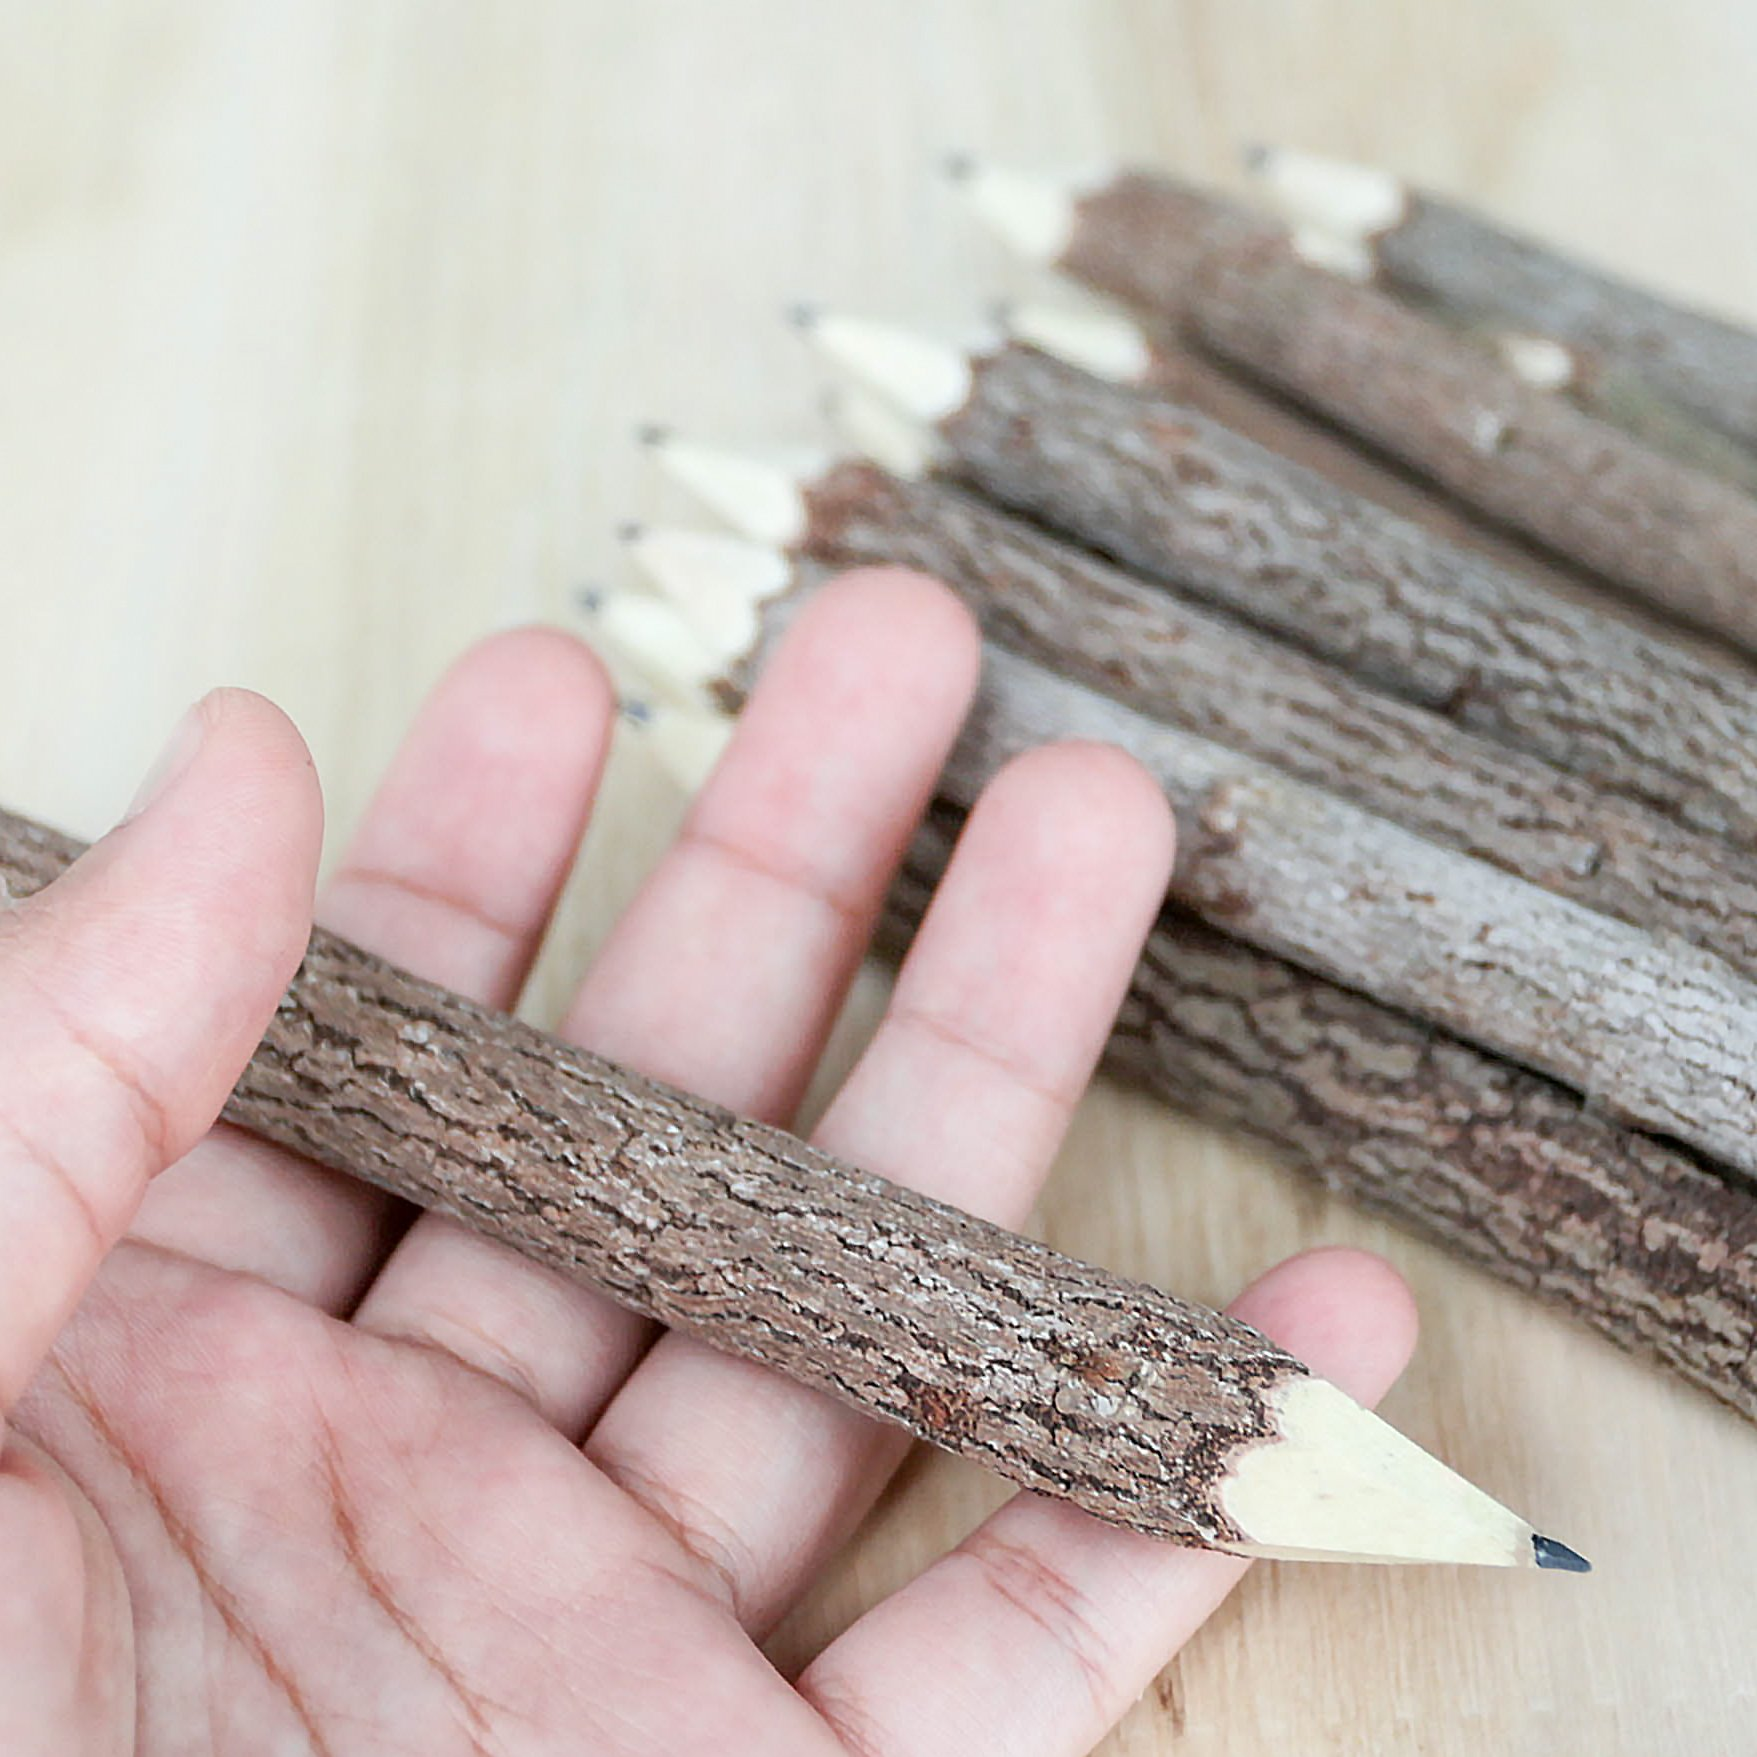 BSIRI Graphite Wooden Tree Rustic Twig Pencils Unique Birch of 12 Camping Lumberjack Party Novelty Gift by BSIRI (Image #6)